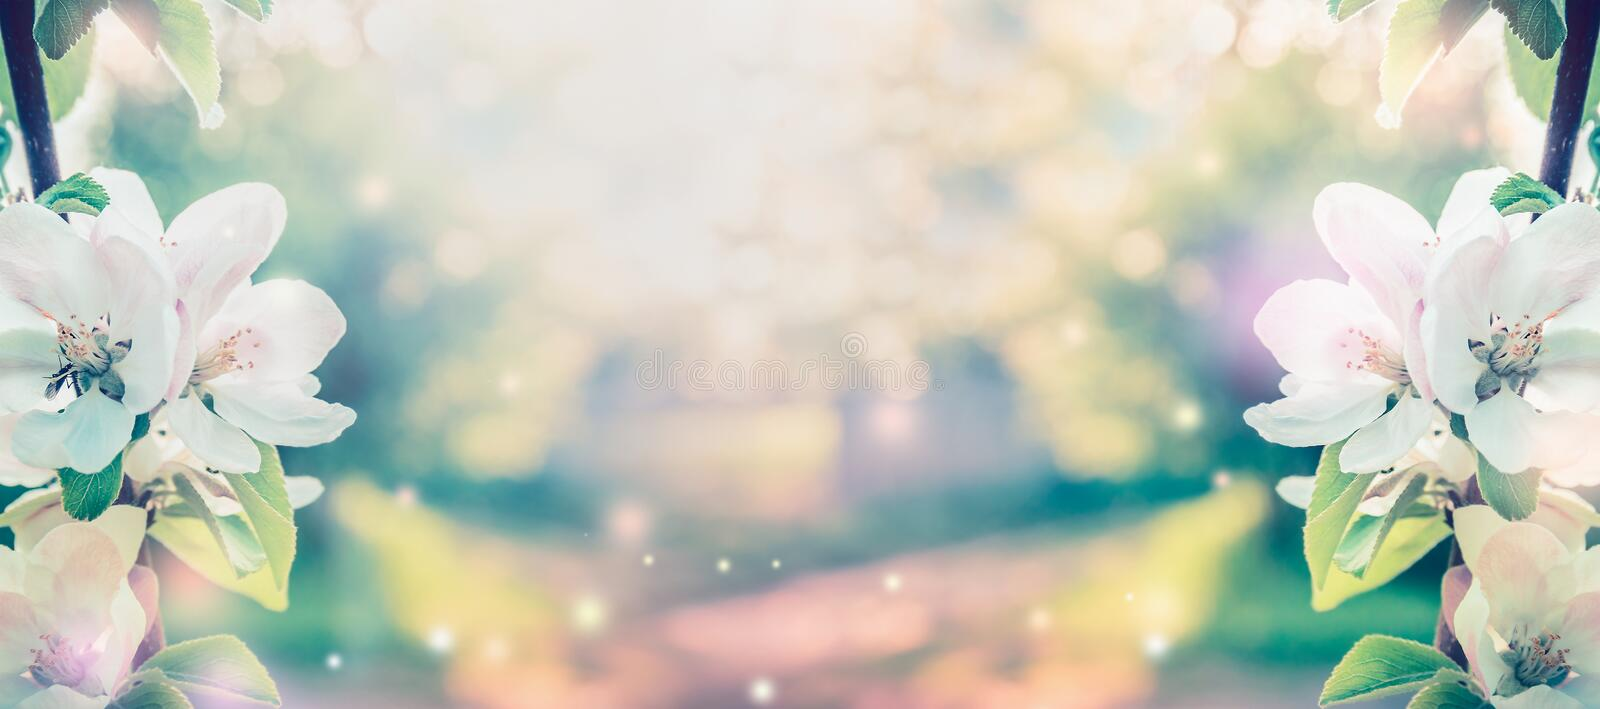 Spring blossom over blurred nature background with sunshine, banner. Retro toned stock images